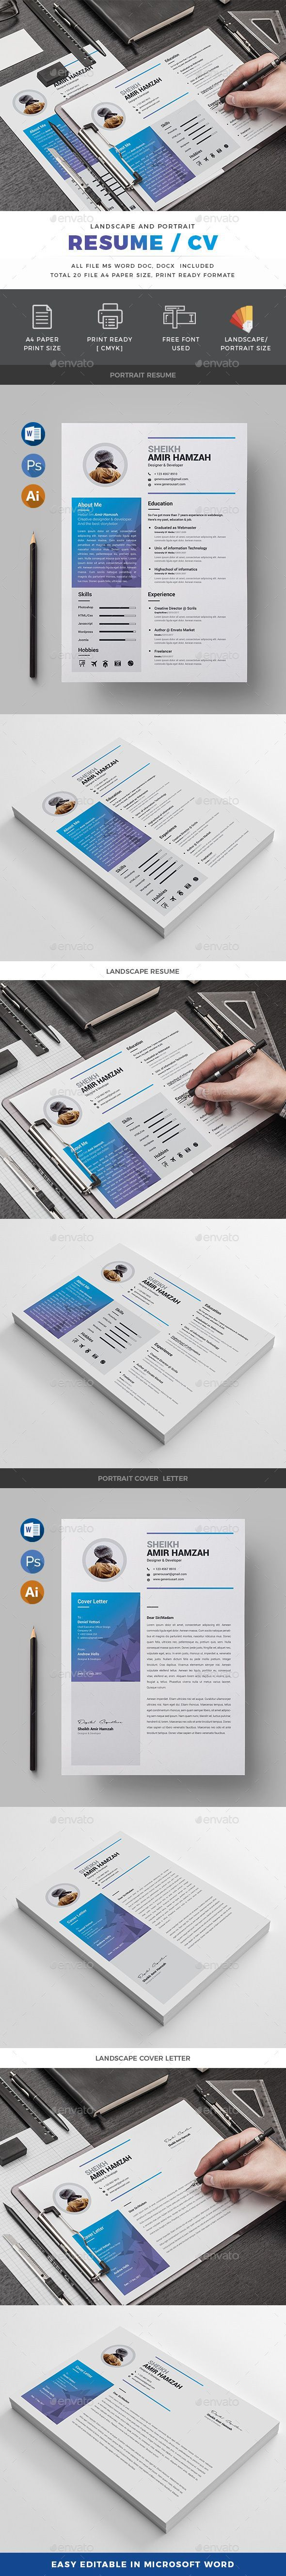 cashier resume format%0A  Resume  Resumes  Stationery Download here  https   graphicriver net